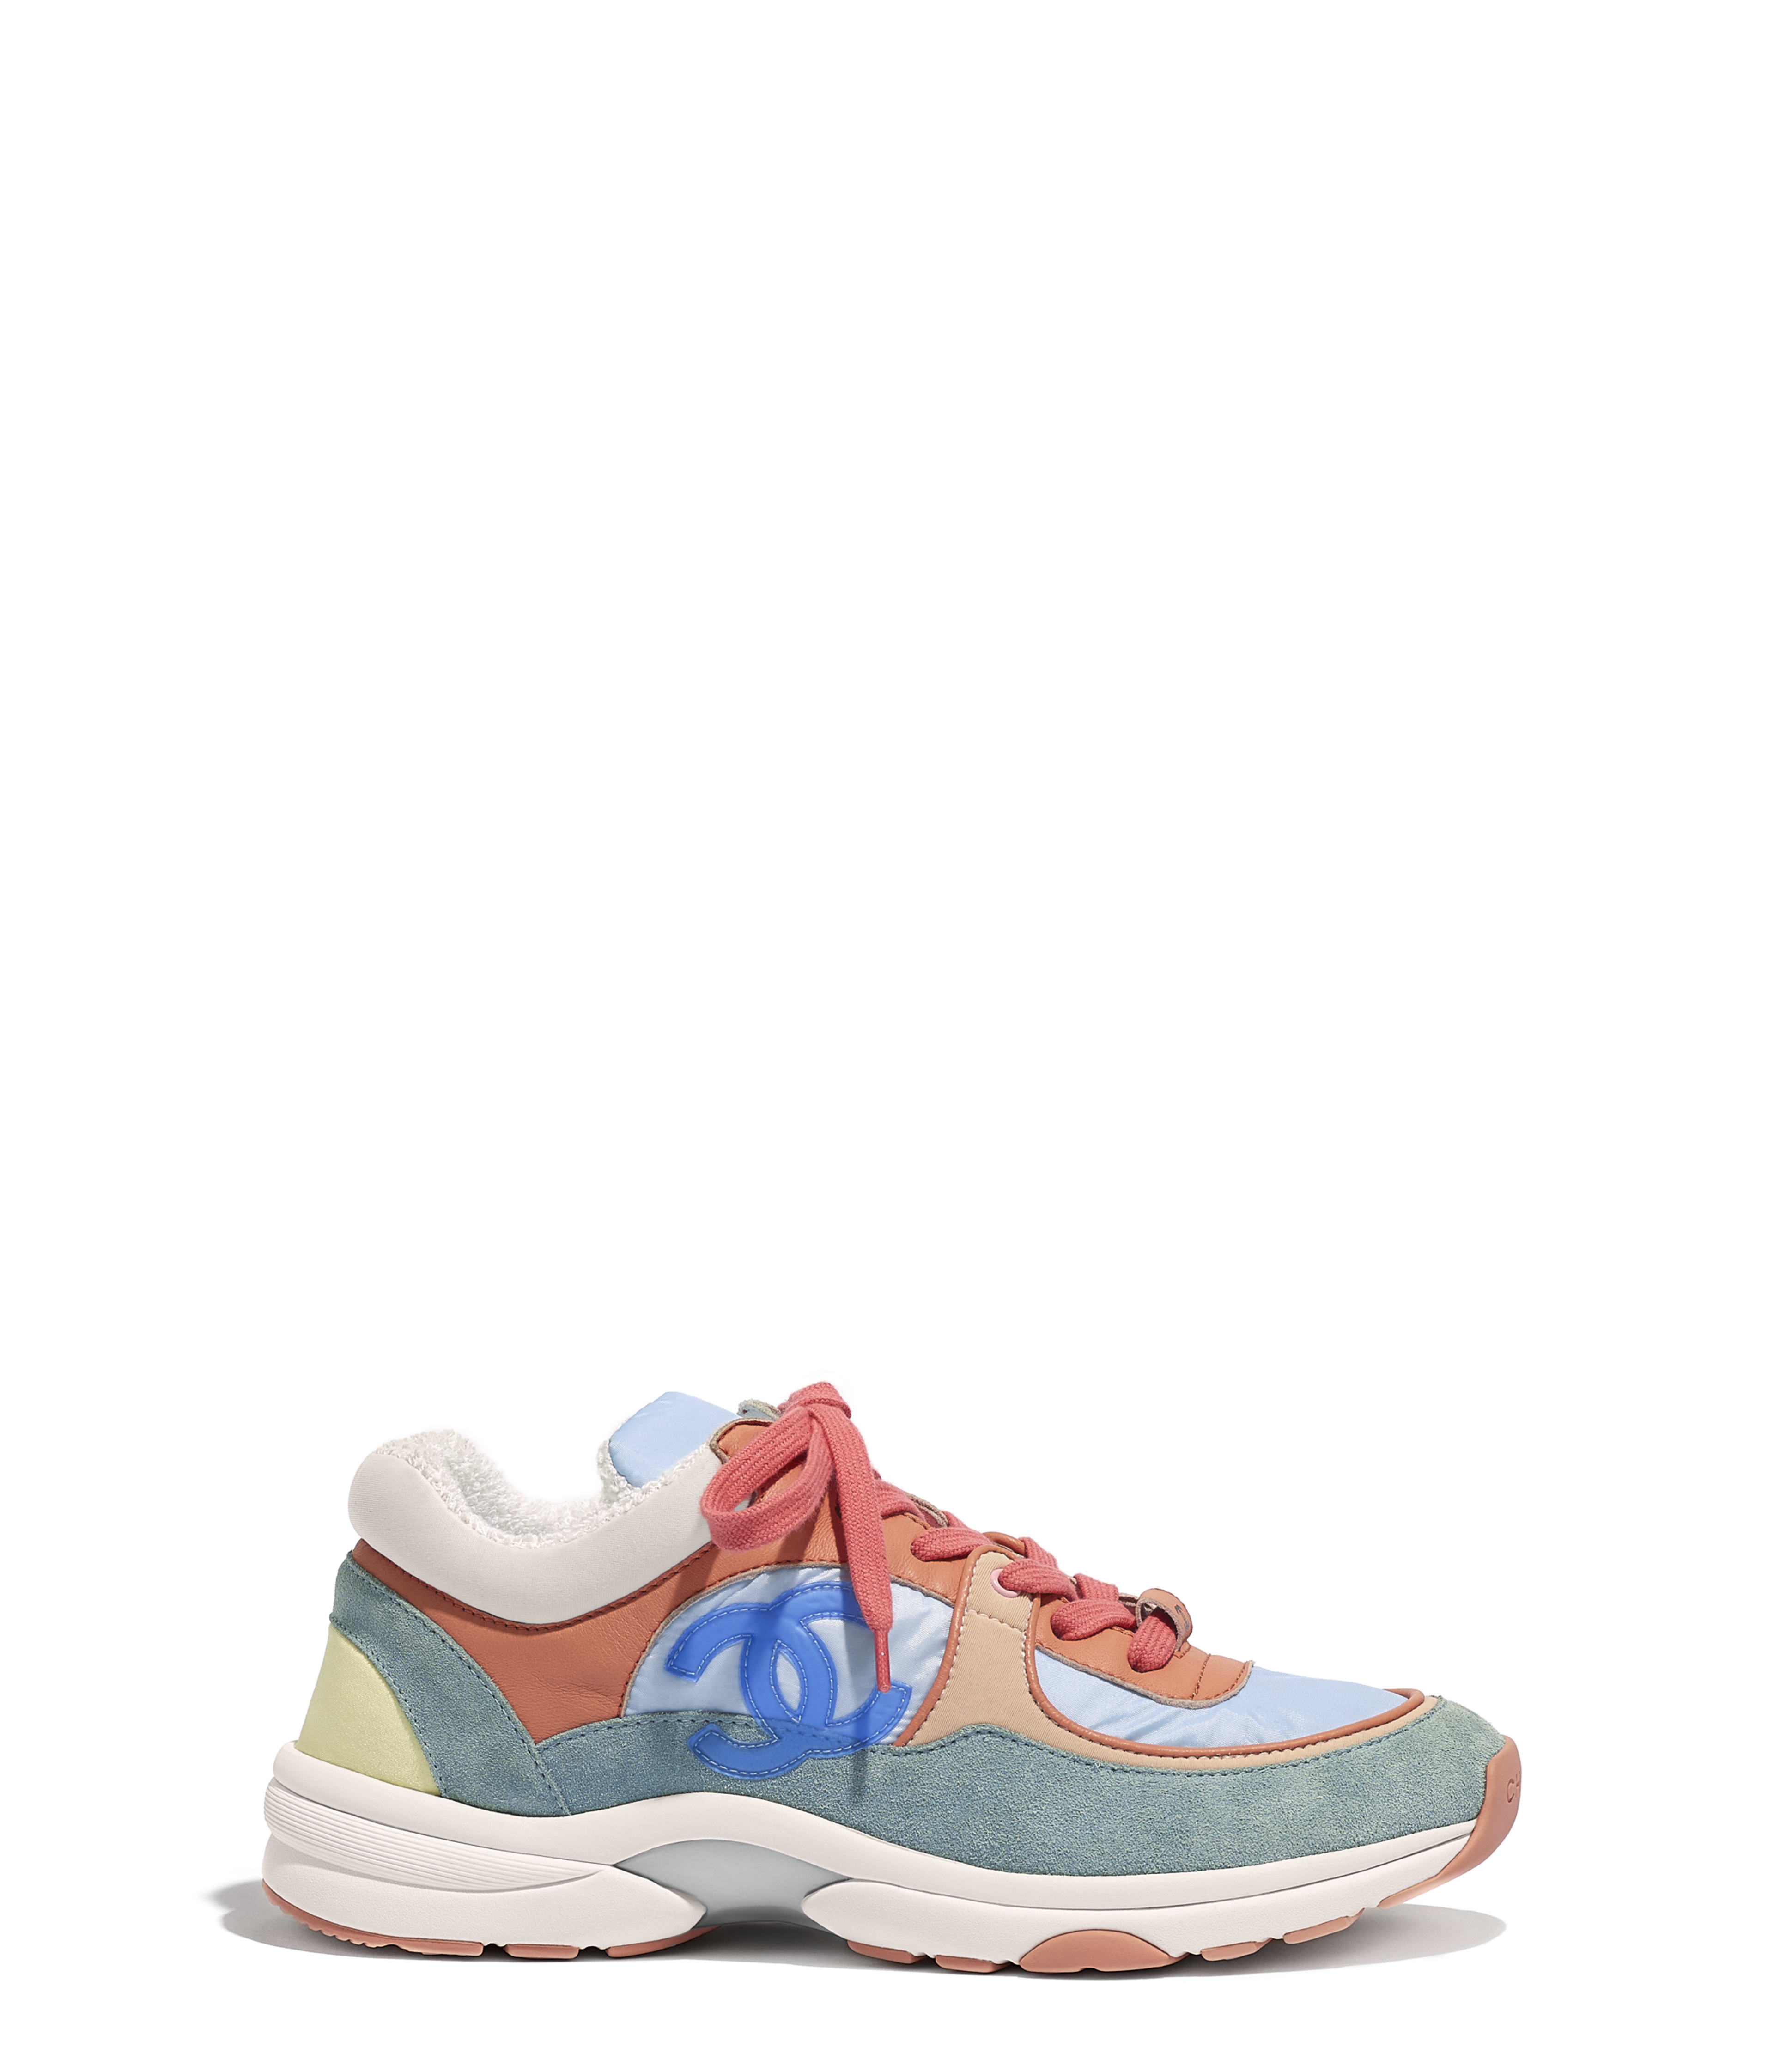 6002325722a Sneakers - Shoes